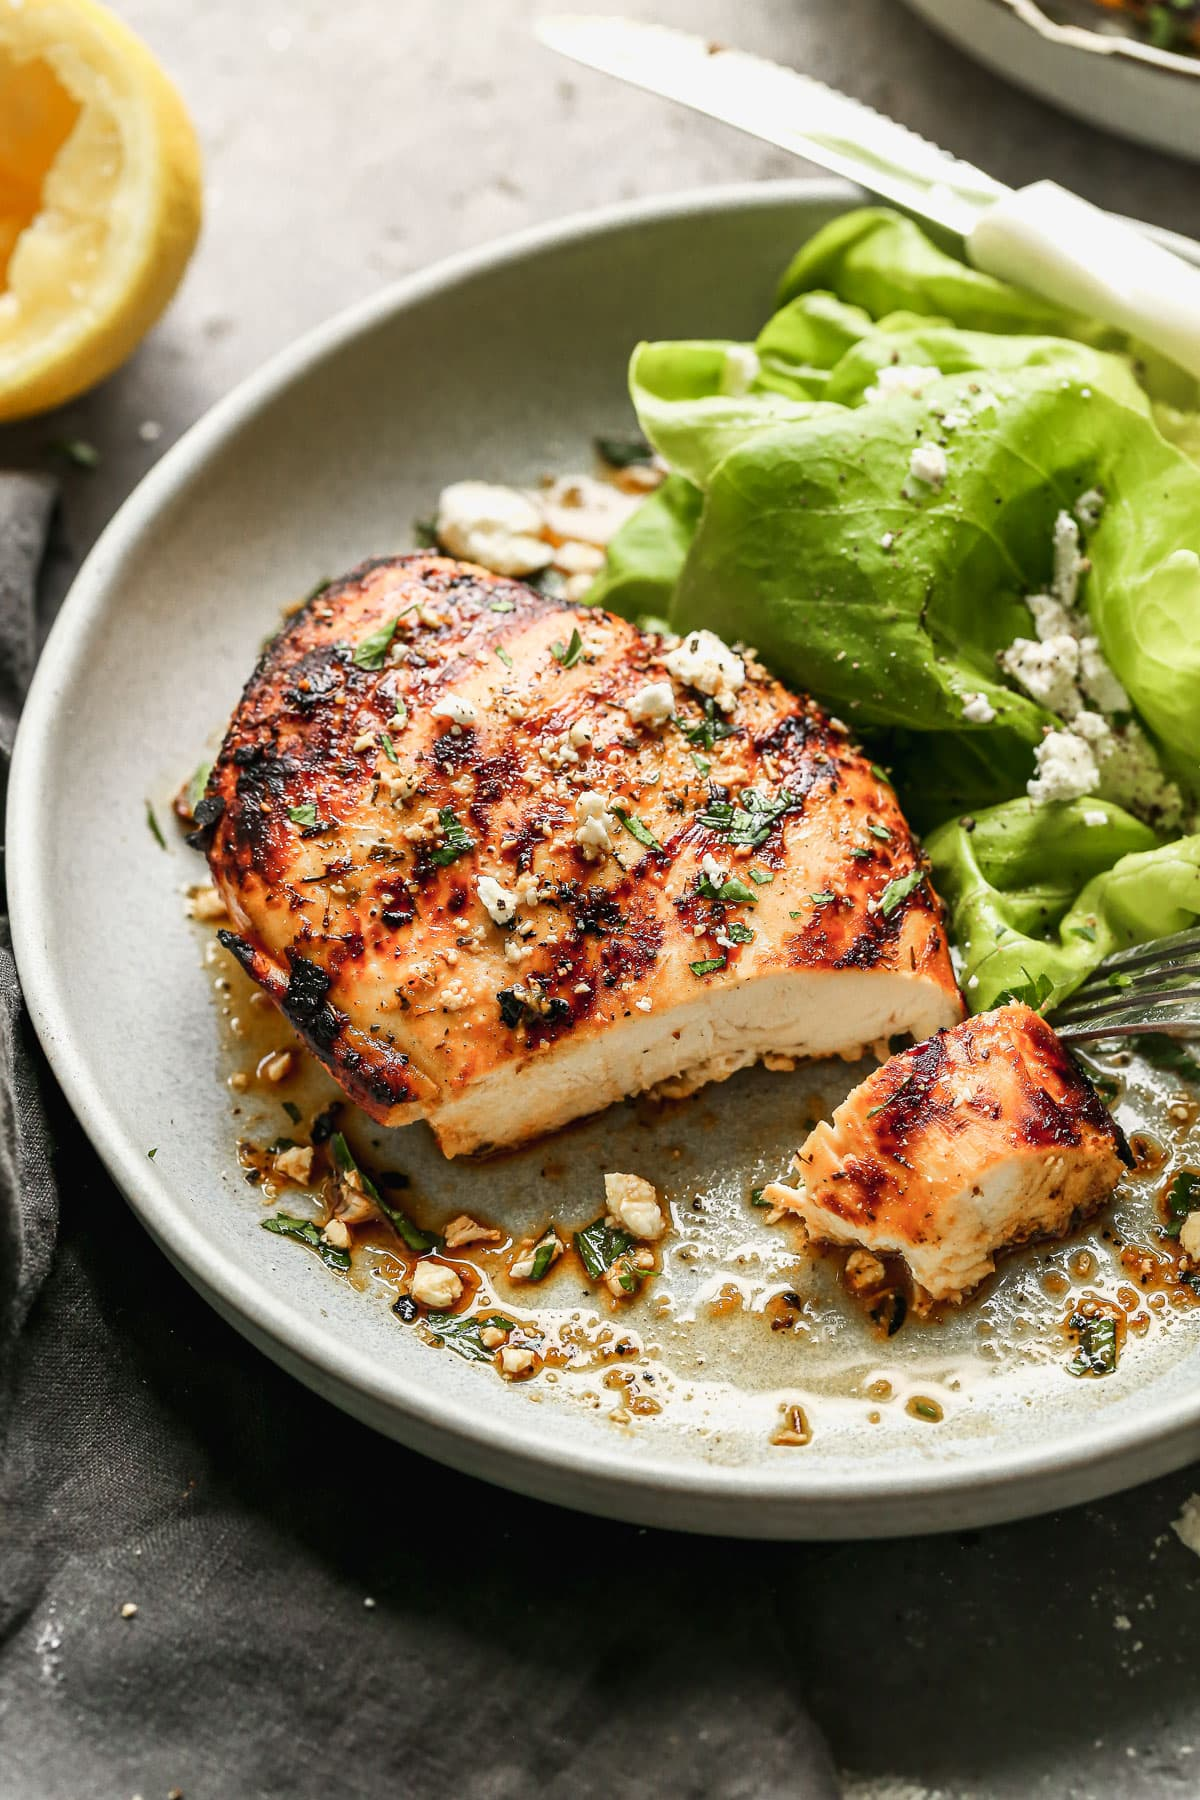 Healthy grilled chicken breast and salad on a plate